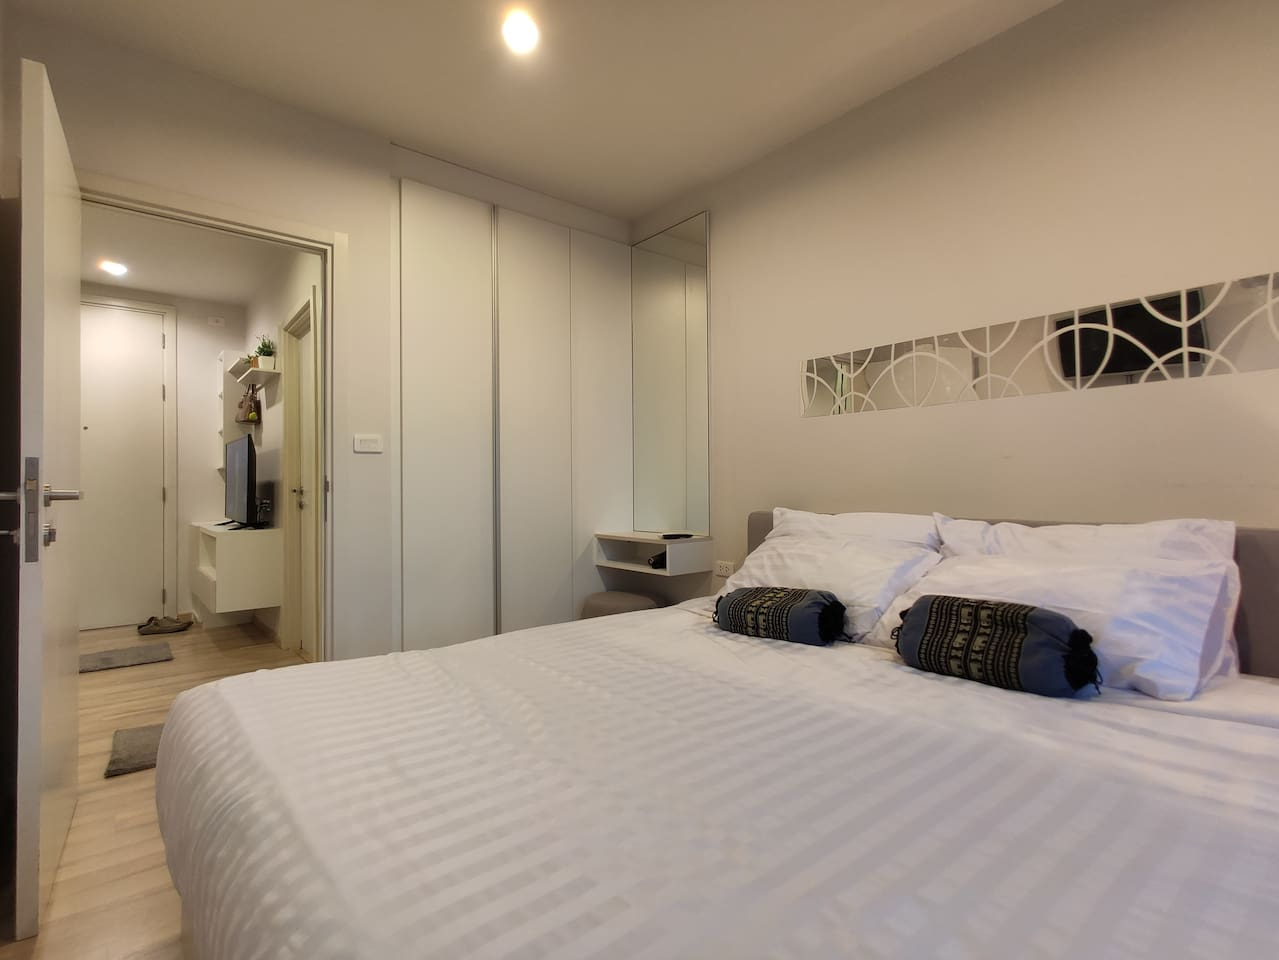 The bedroom with the makeup table, wardrobe, Ironing board in side the wardrobe and hairdryer. Premium pocket spring mattress for your sleeping quality, you can sleep all day without boring. (TV also in the bedroom)